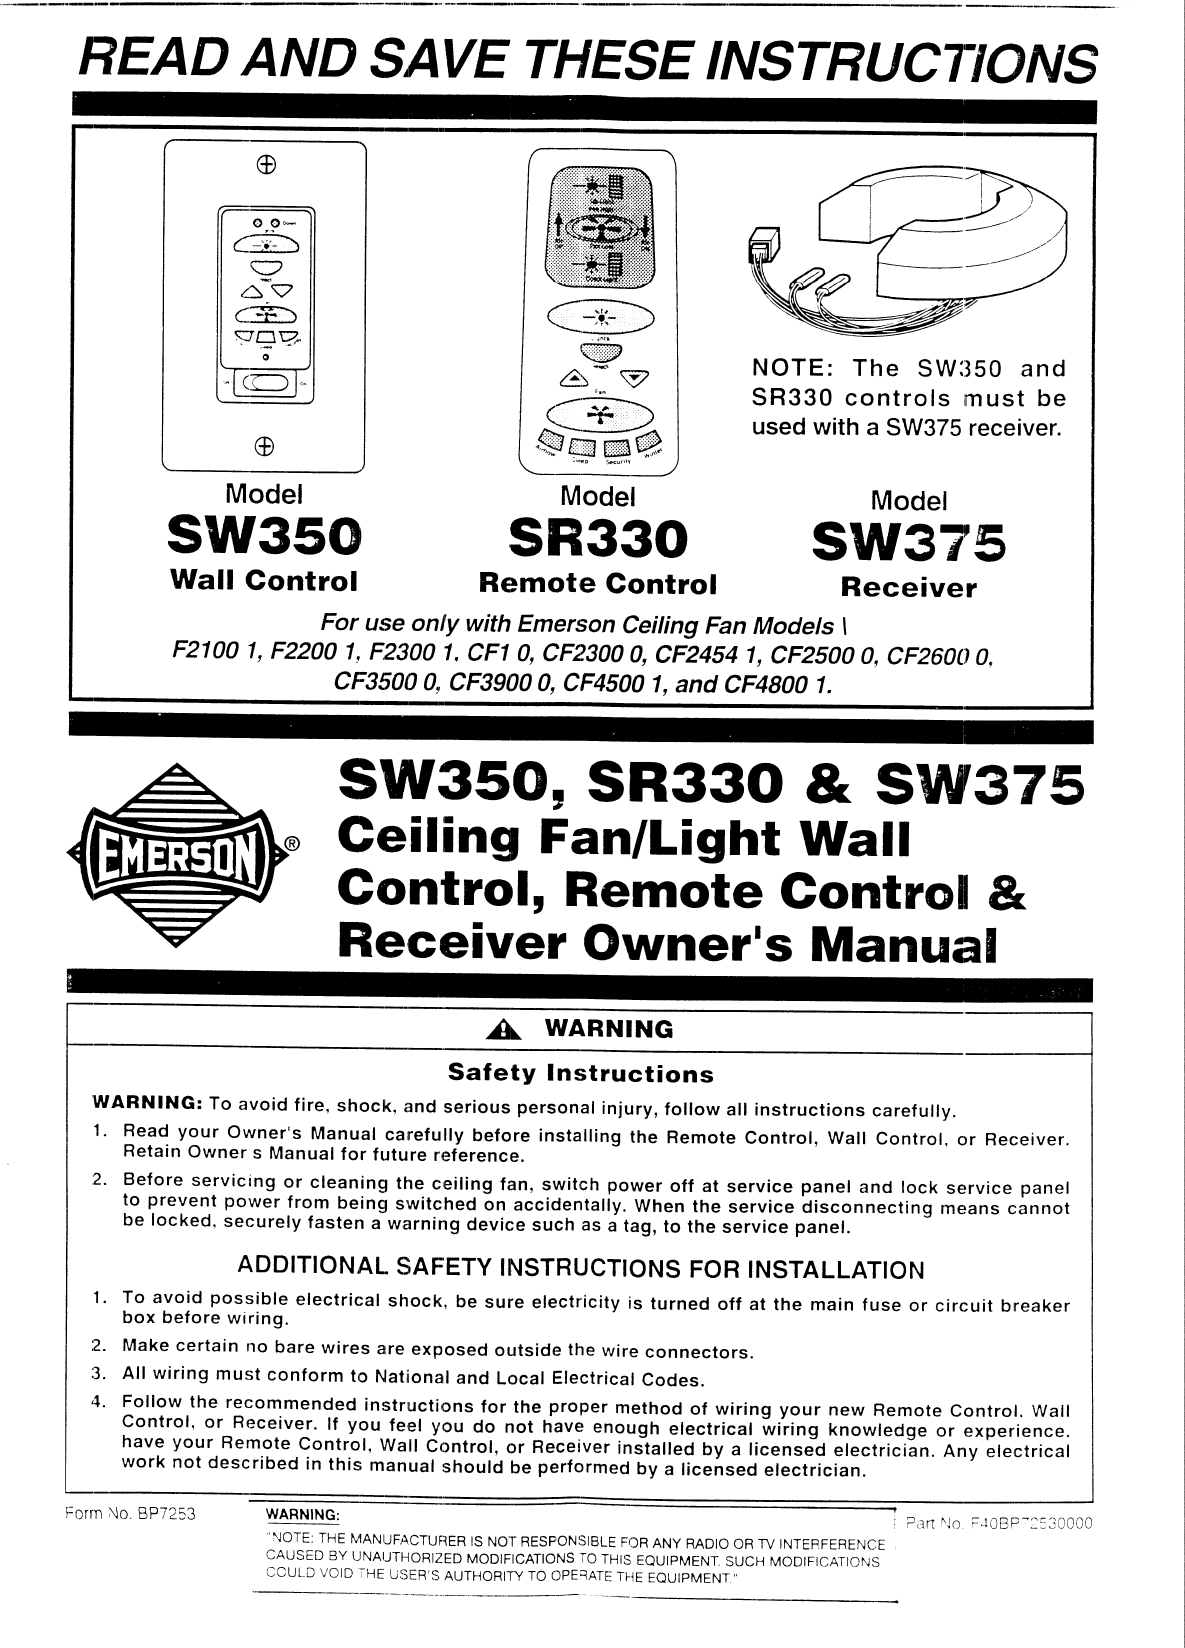 emerson electric co sw350 wall control user manual owners manual rh usermanual wiki used owners manual for 2009 chevrolet hhr used owners manual 2008 ford escape